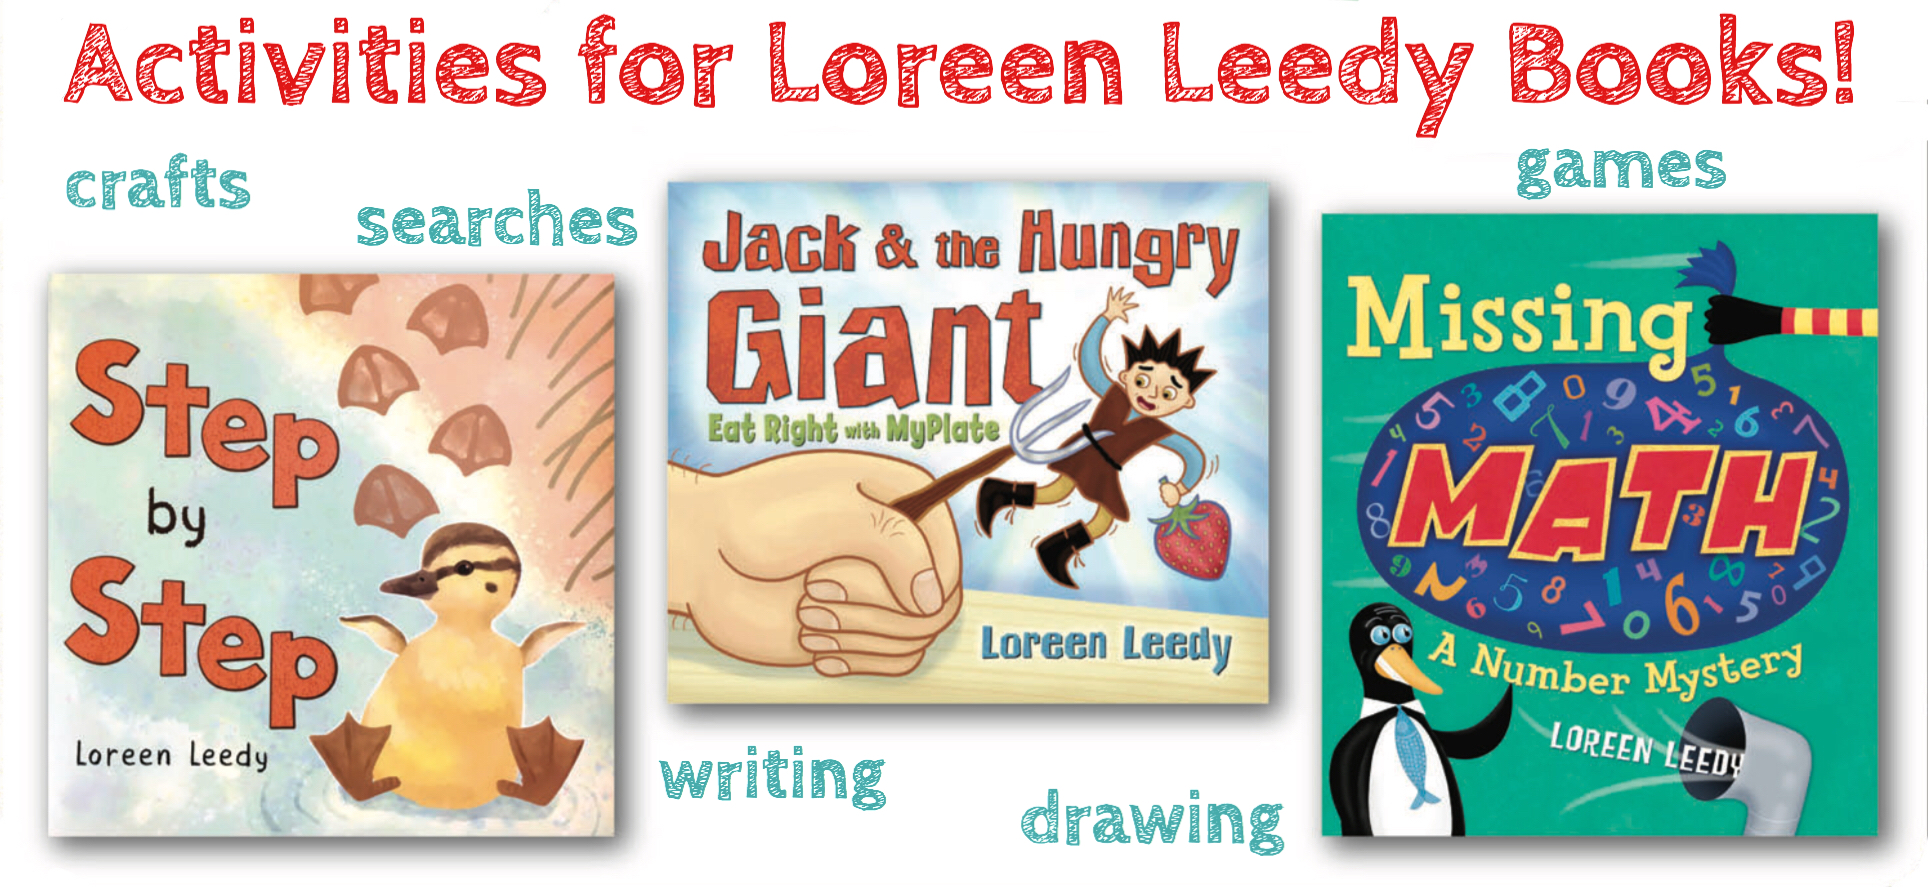 Free printable activities and ideas for using Loreen Leedy books in the classroom.